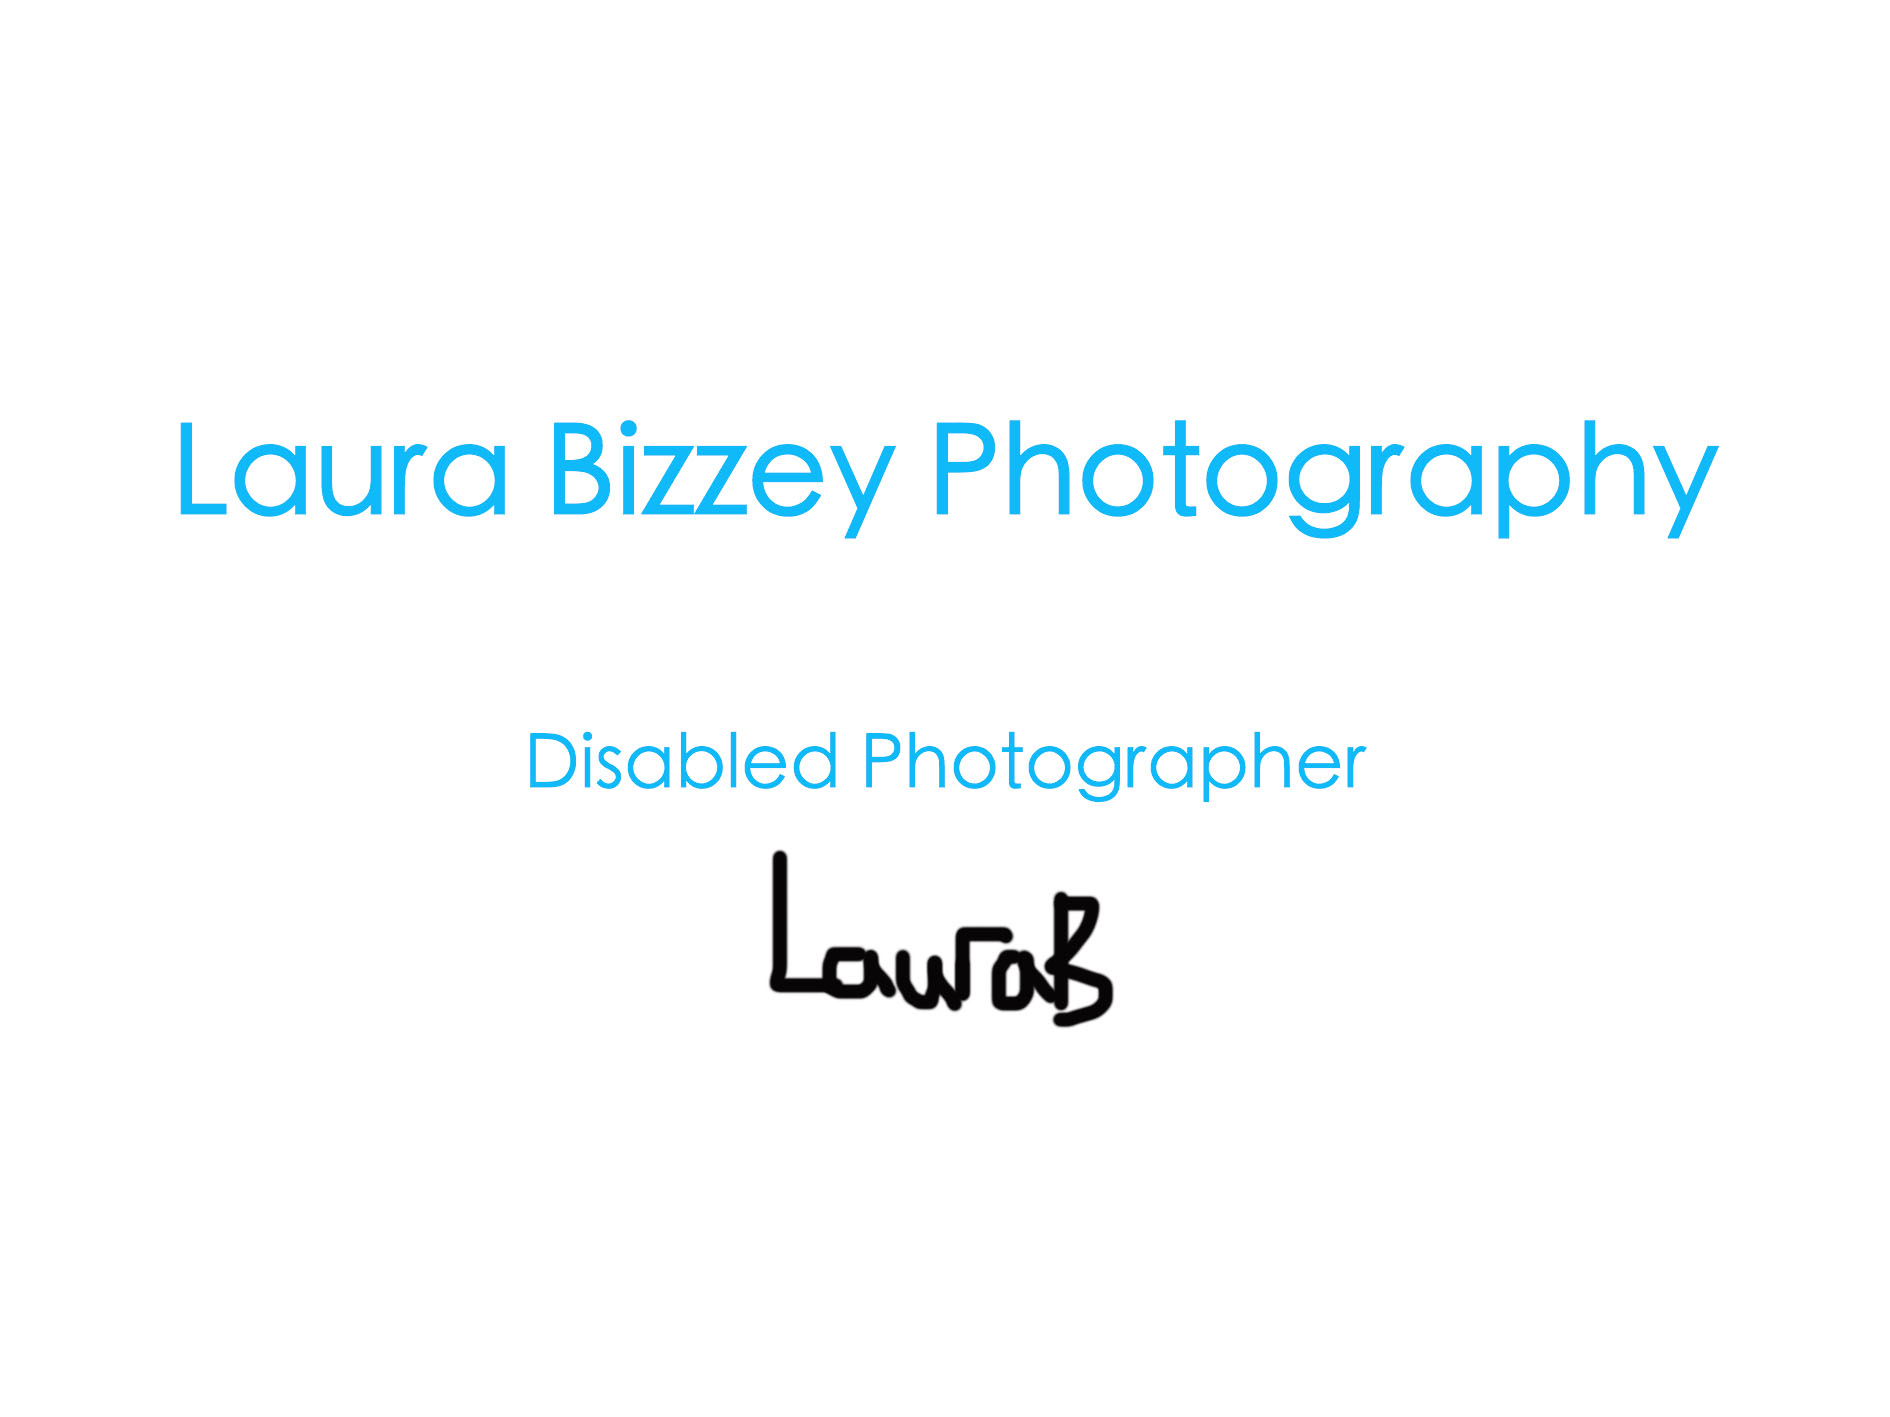 Laura Bizzey's Signature